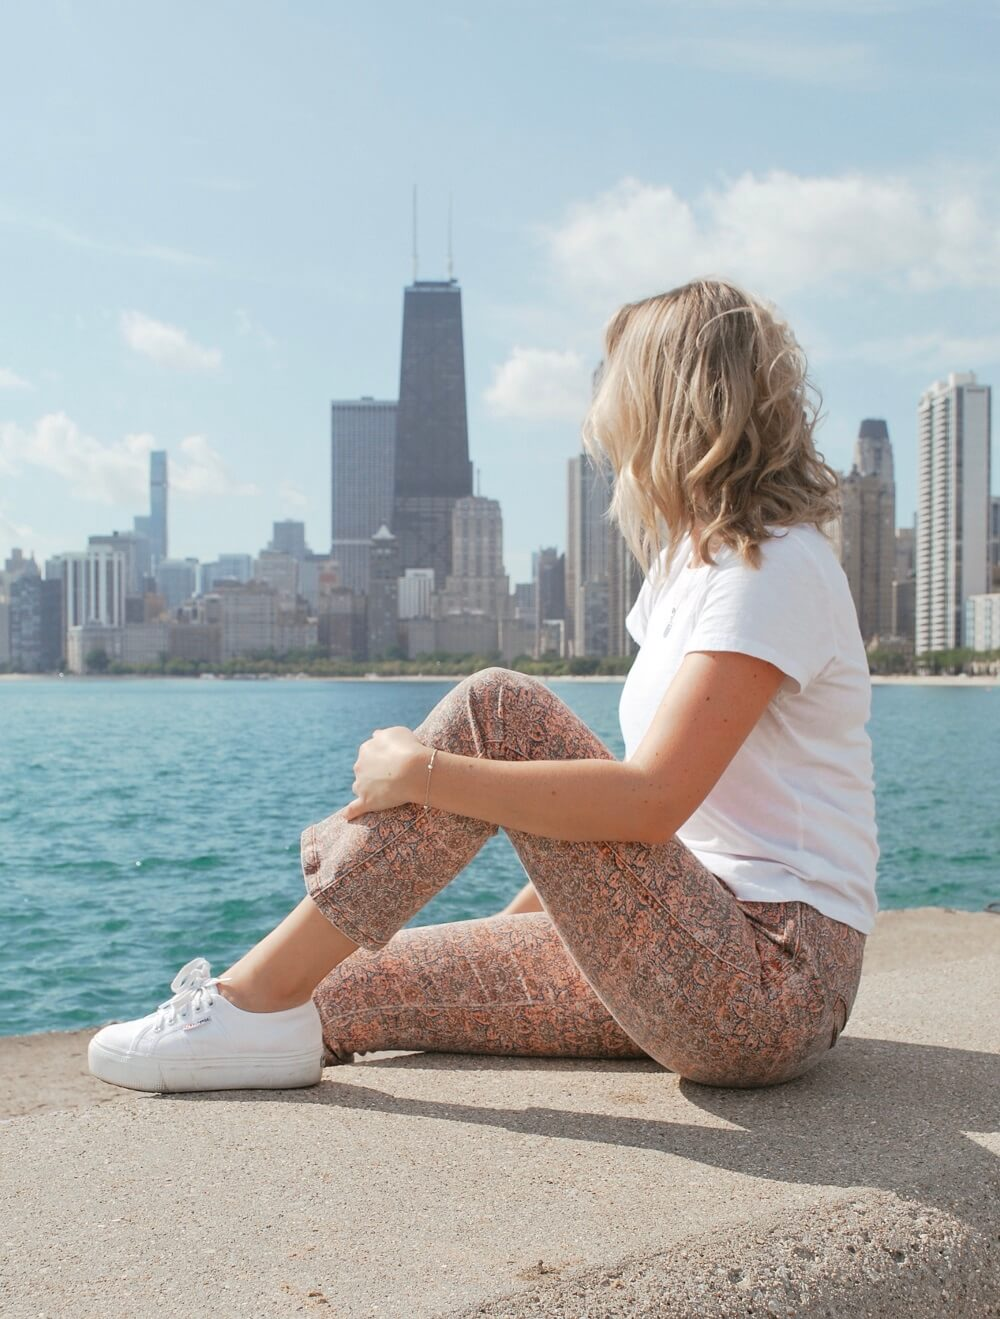 Gazing out at the Chicago skyline